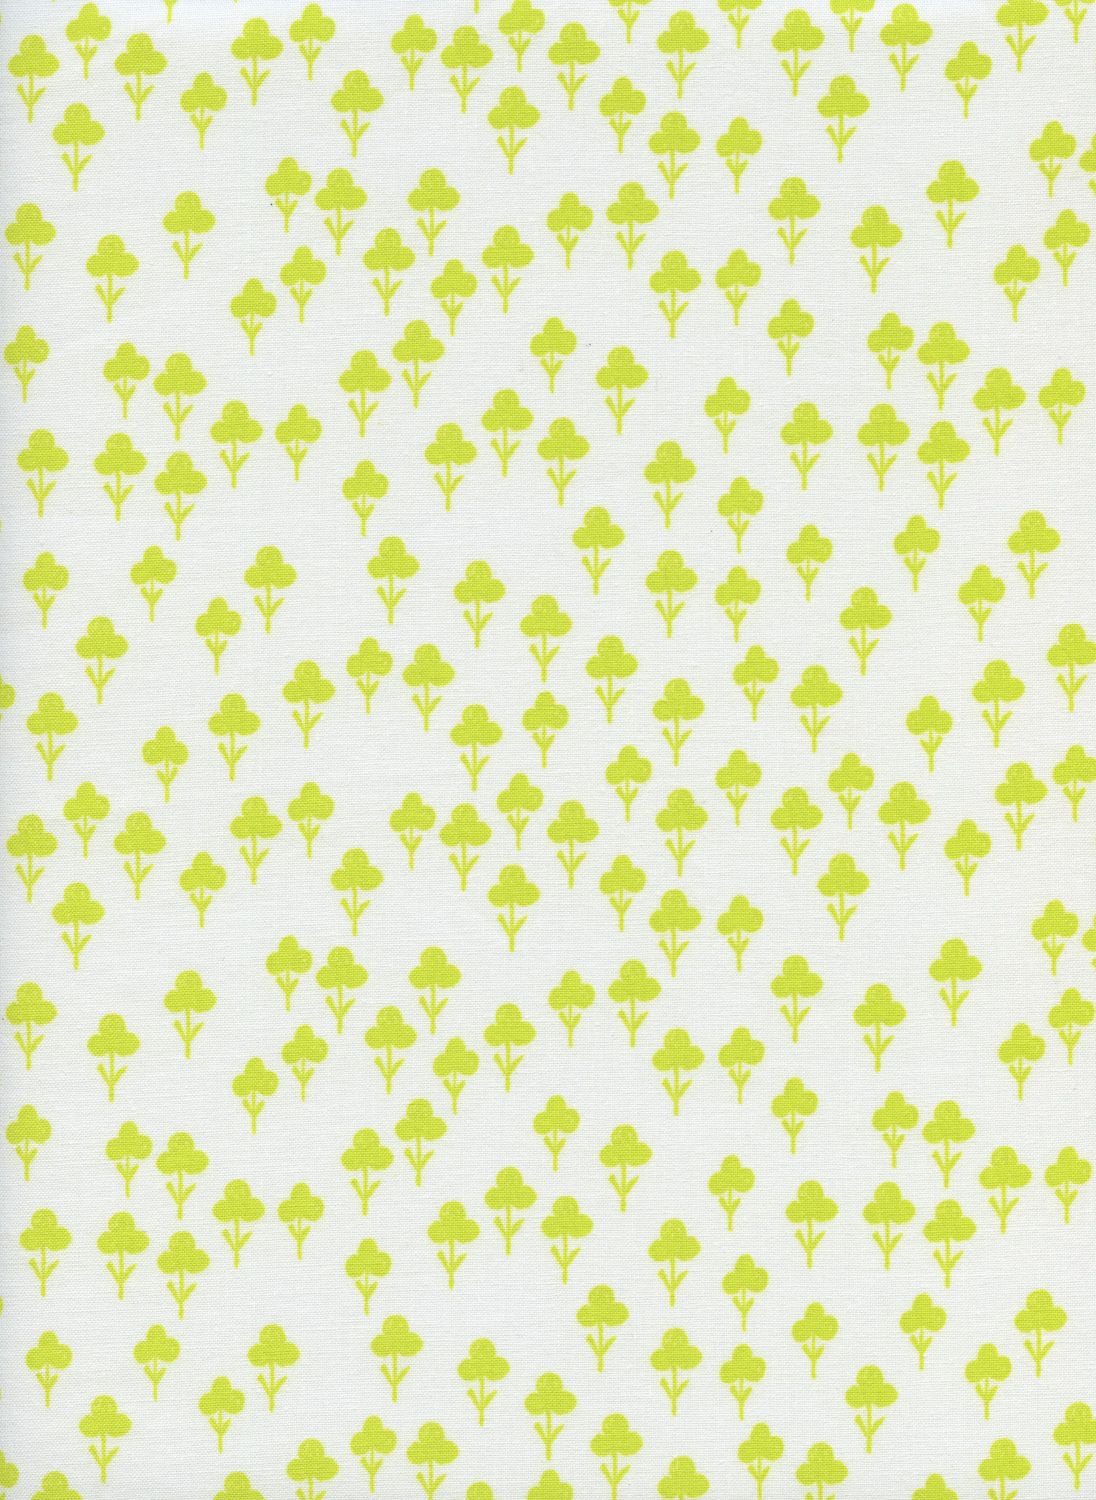 Clovers in Yellow by Sarah Watts from the Front Yard collection for Cotton and Steel #S 2073001